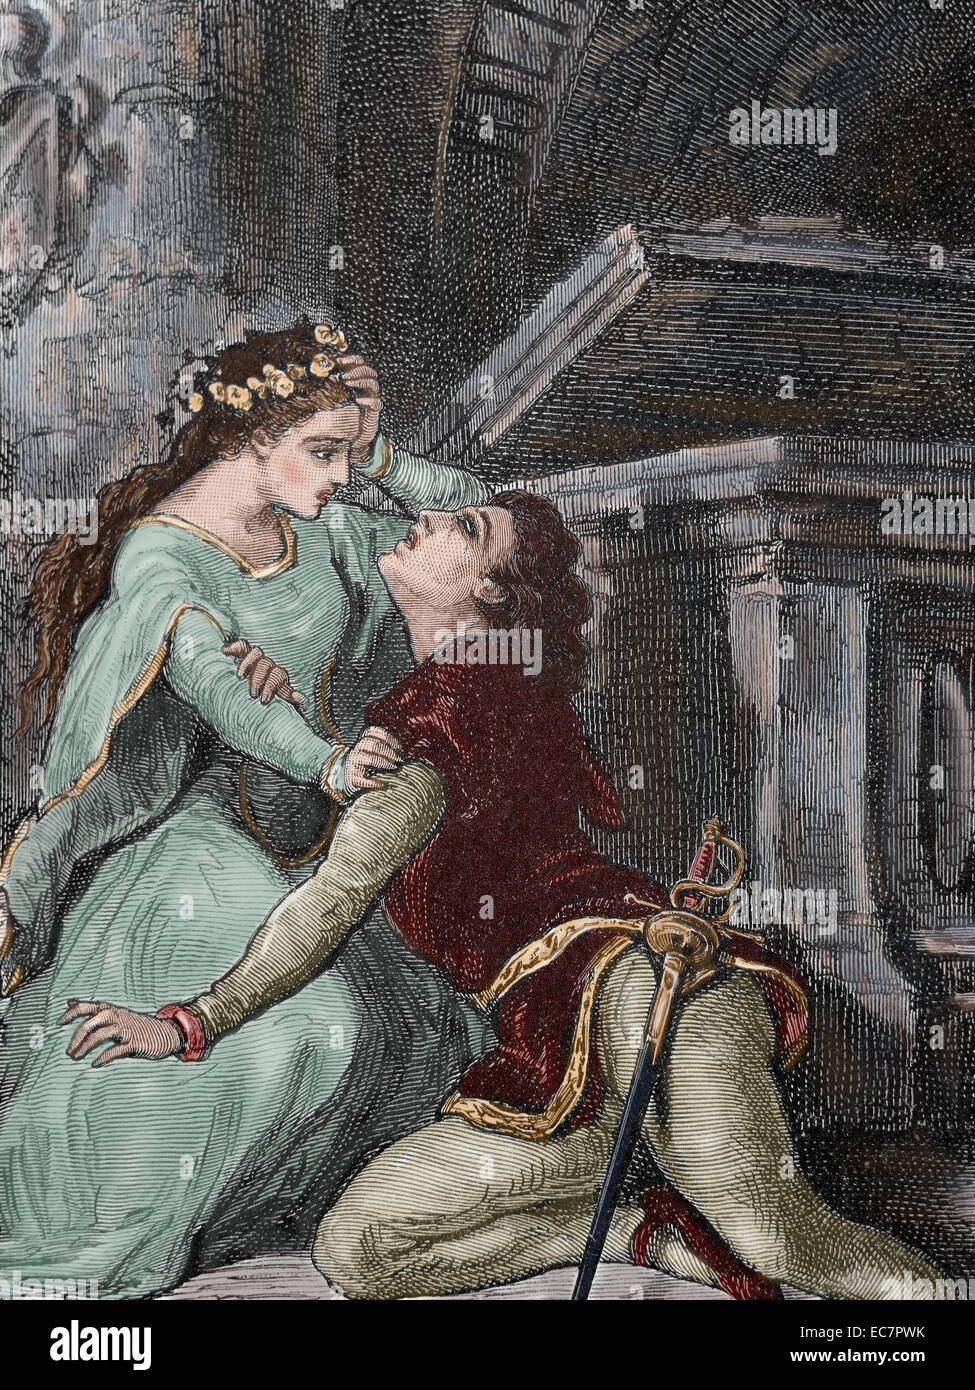 the poison to love in romeo and juliet by william shakespeare Romeo and juliet by william shakespeare  william act 5, scene 1 romeo and juliet  romeo there is thy gold, worse poison to men's souls.